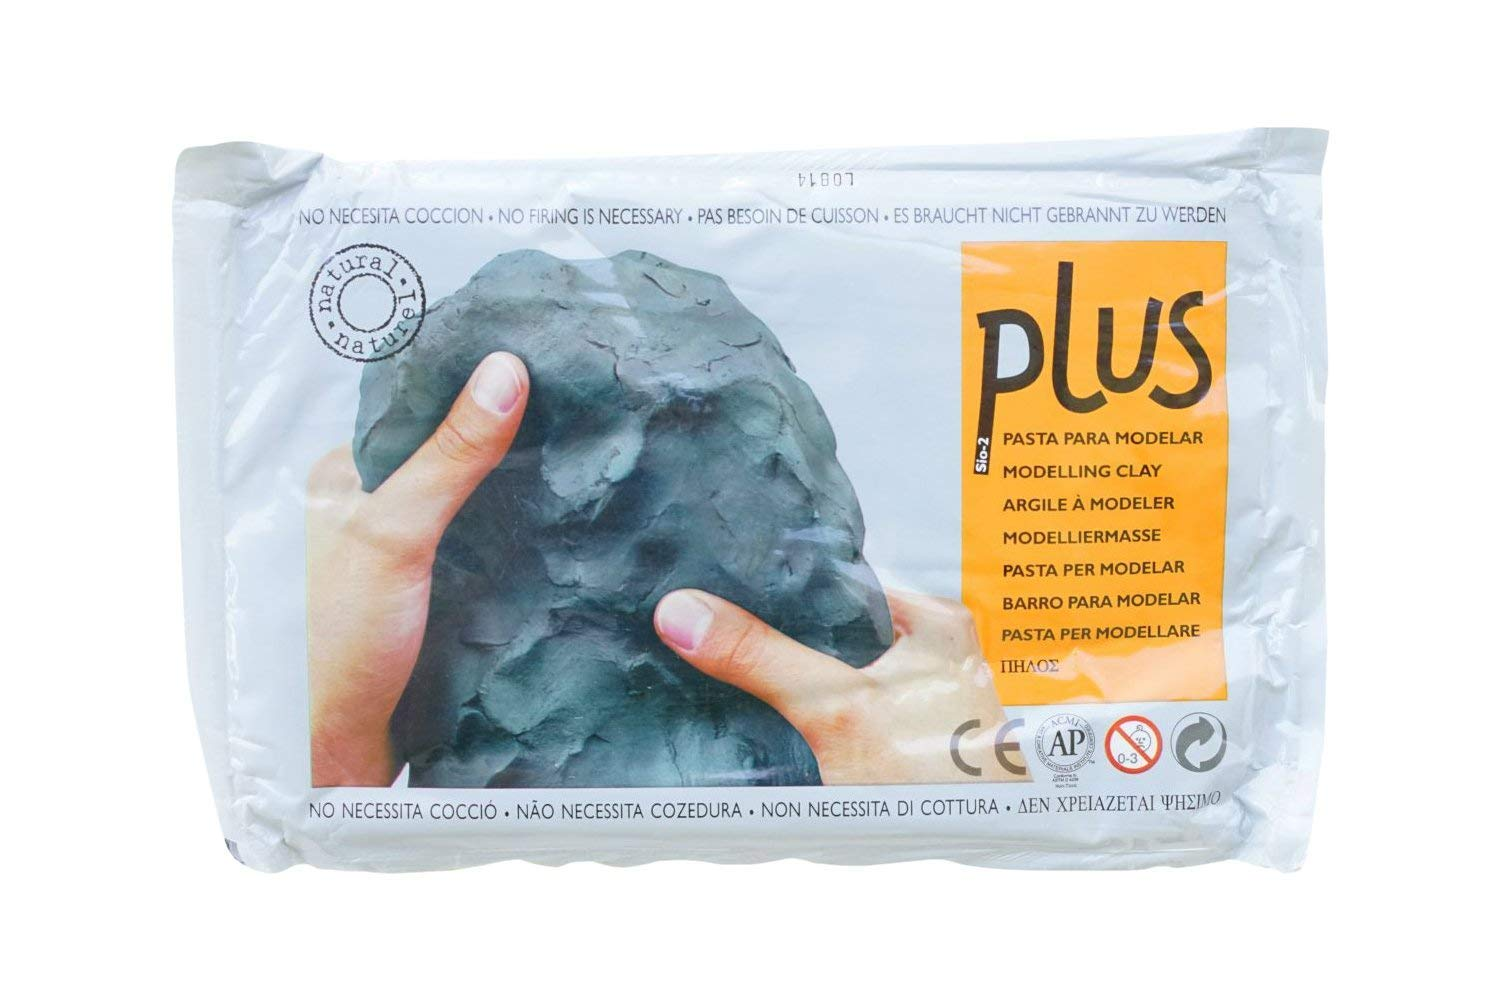 Activa Plus Clay Natural Self-Hardening Clay Black 2.2 pounds (4 Units)